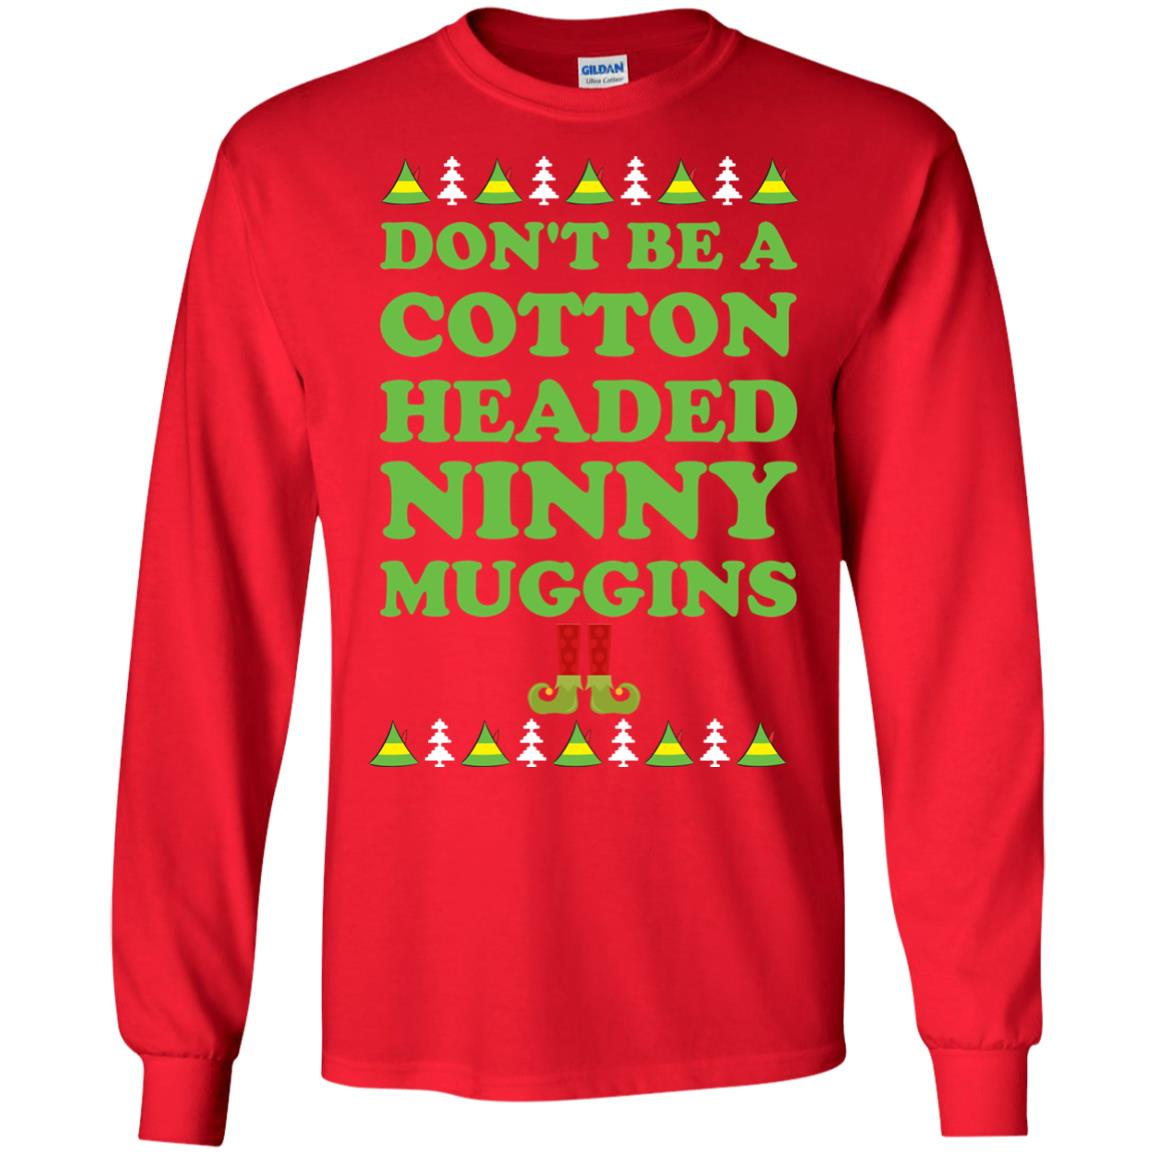 image 2794 - Elf Don't Be a Cotton Headed Ninny Muggins Christmas Sweater, Hoodie